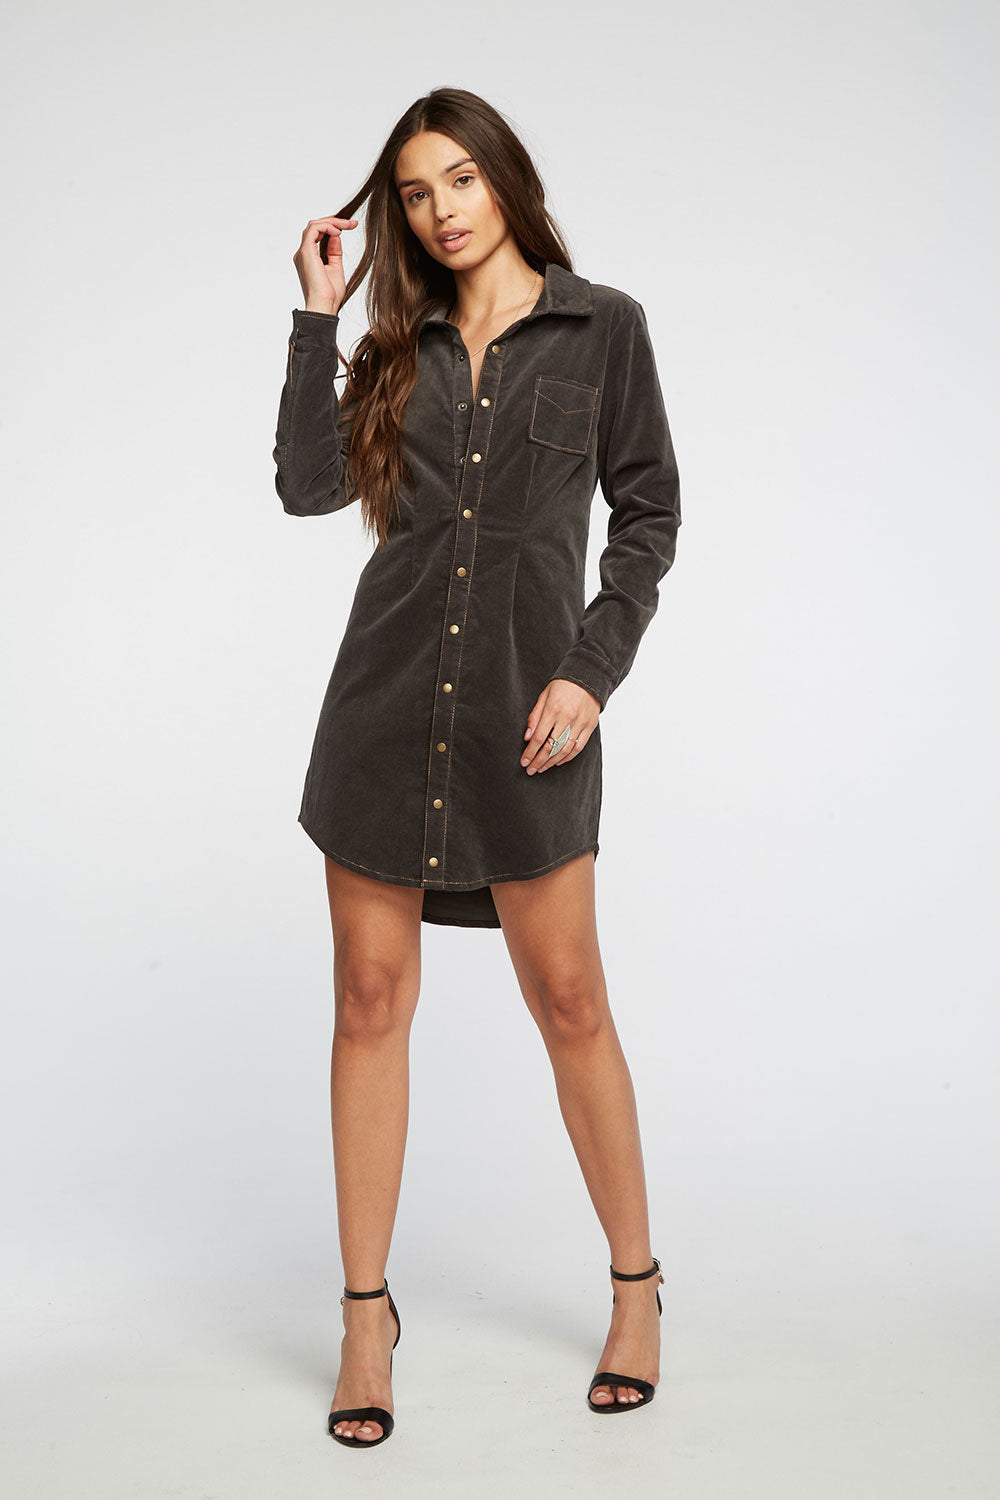 Corduroy Shirtdress, WOMENS, chaserbrand.com,chaser clothing,chaser apparel,chaser los angeles